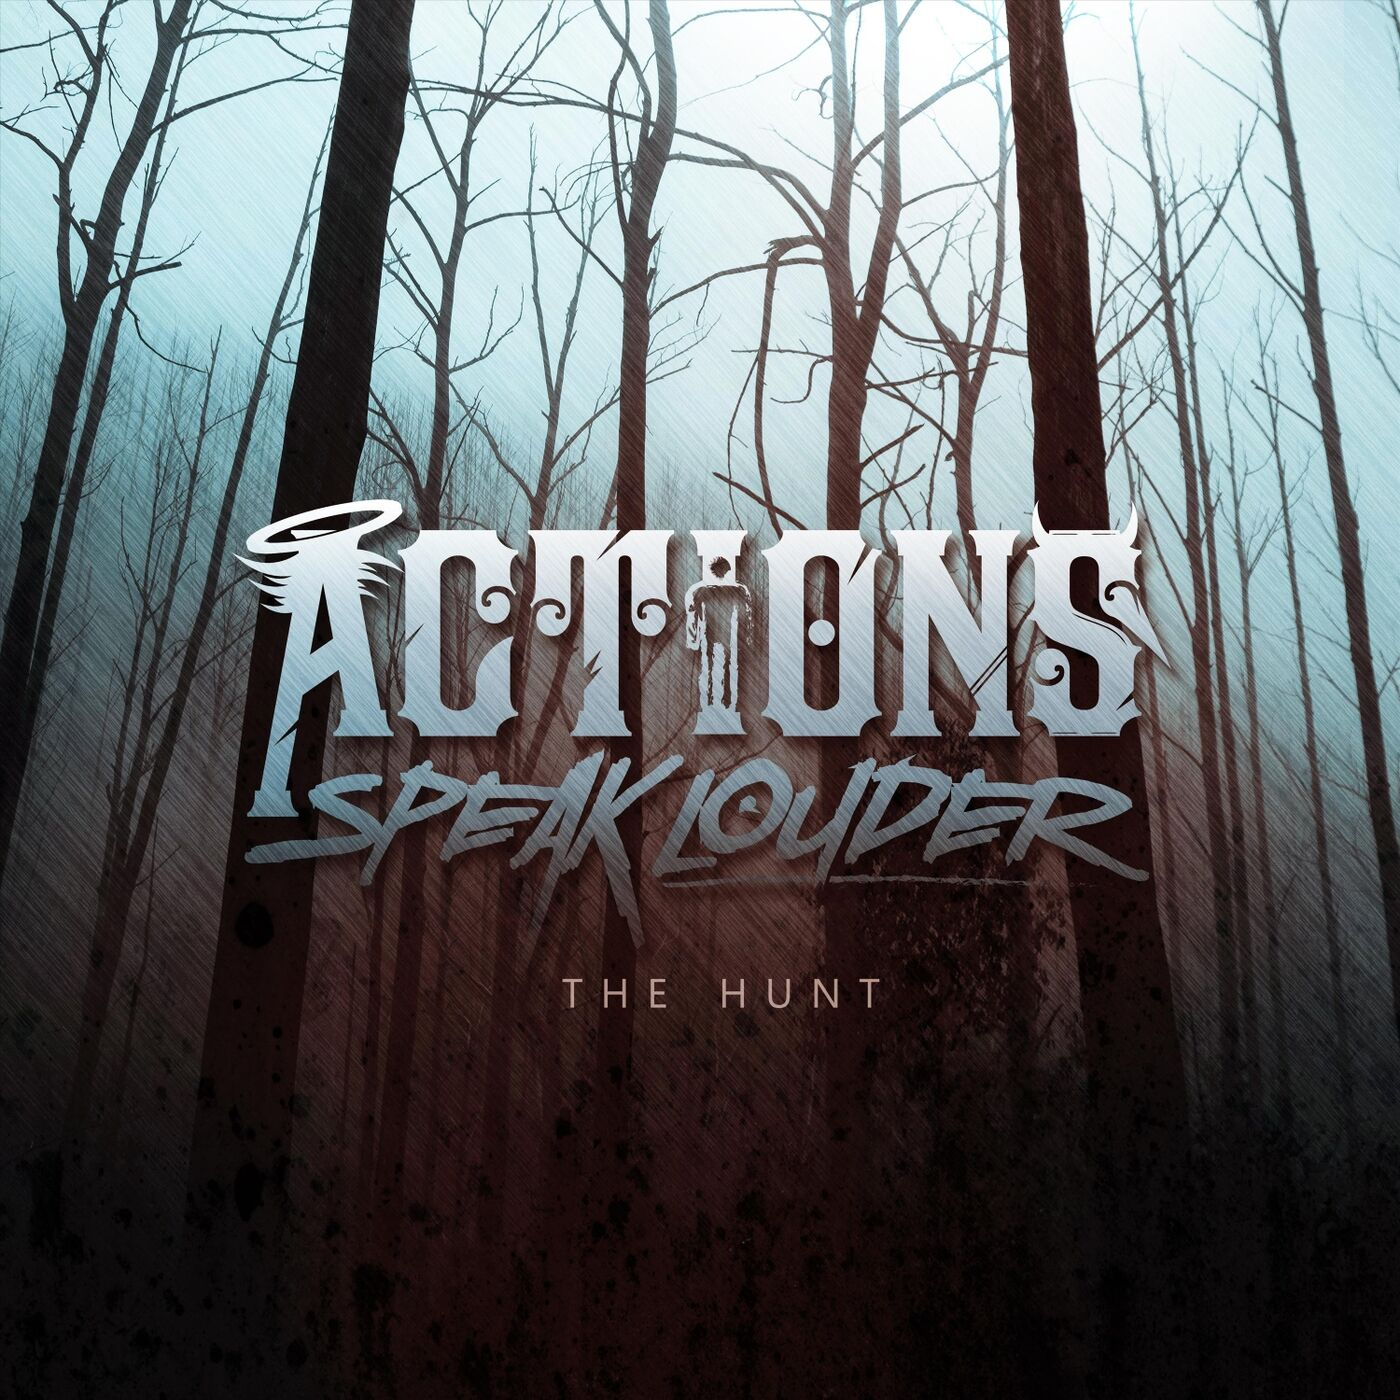 Actions Speak Louder - The Hunt [single] (2019)